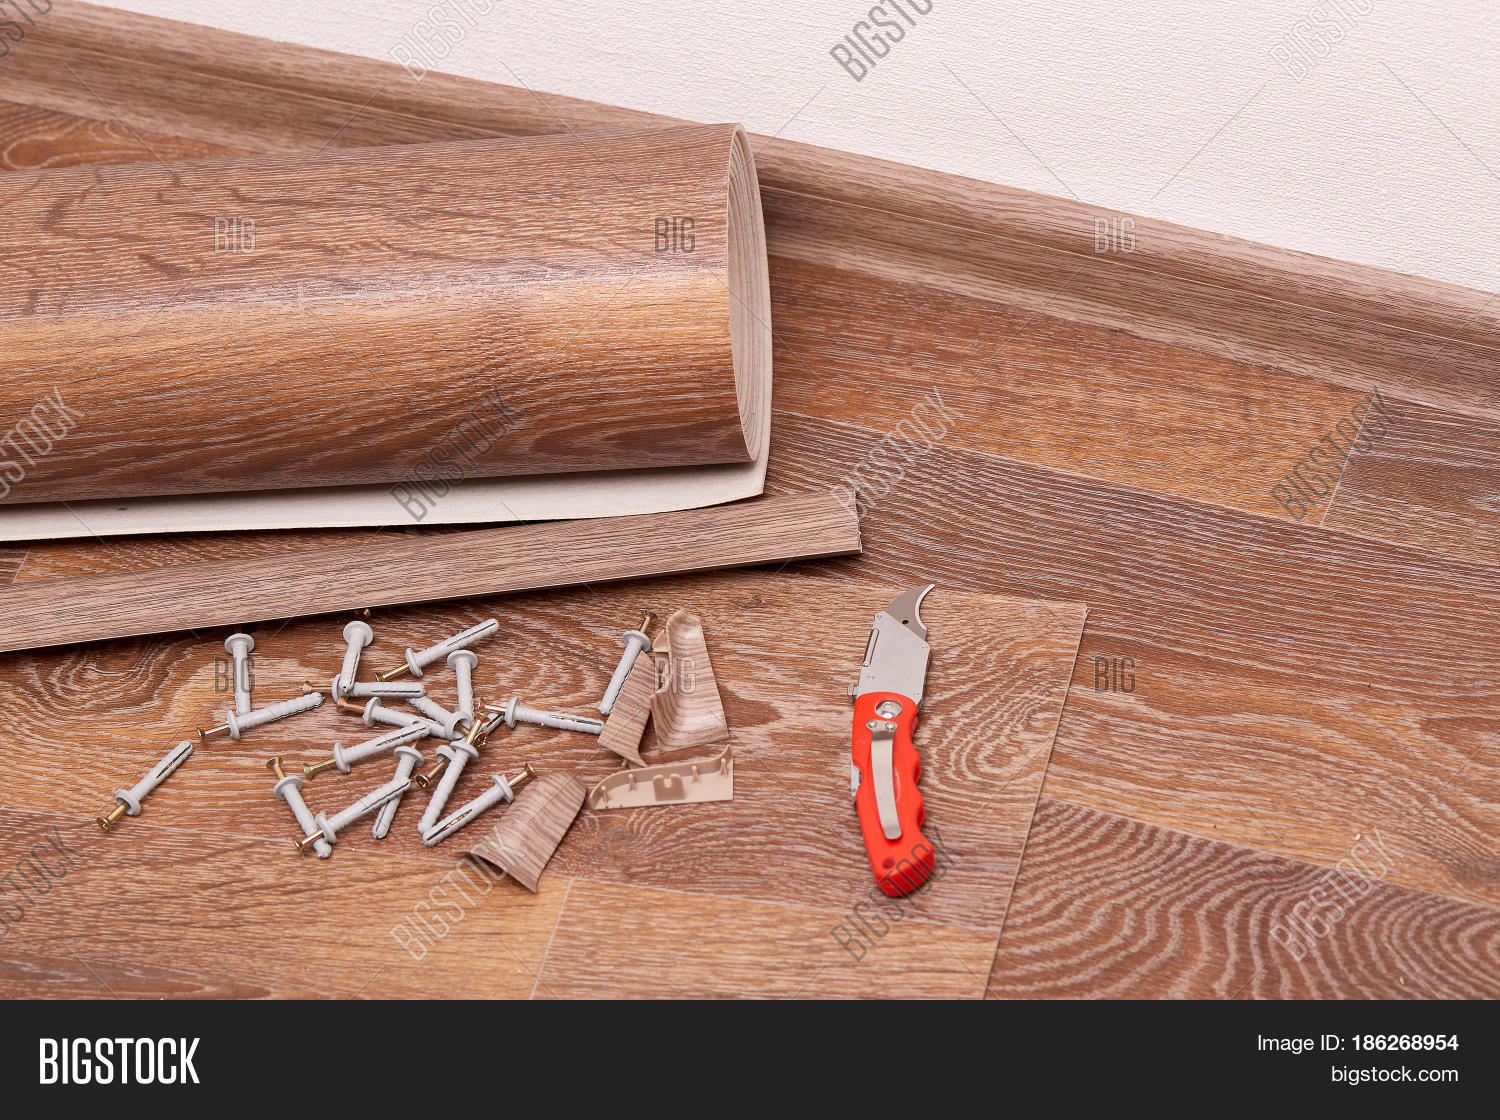 A Roll Of Linoleum Baseboards Fasteners Are Laying On The New Floor Covering